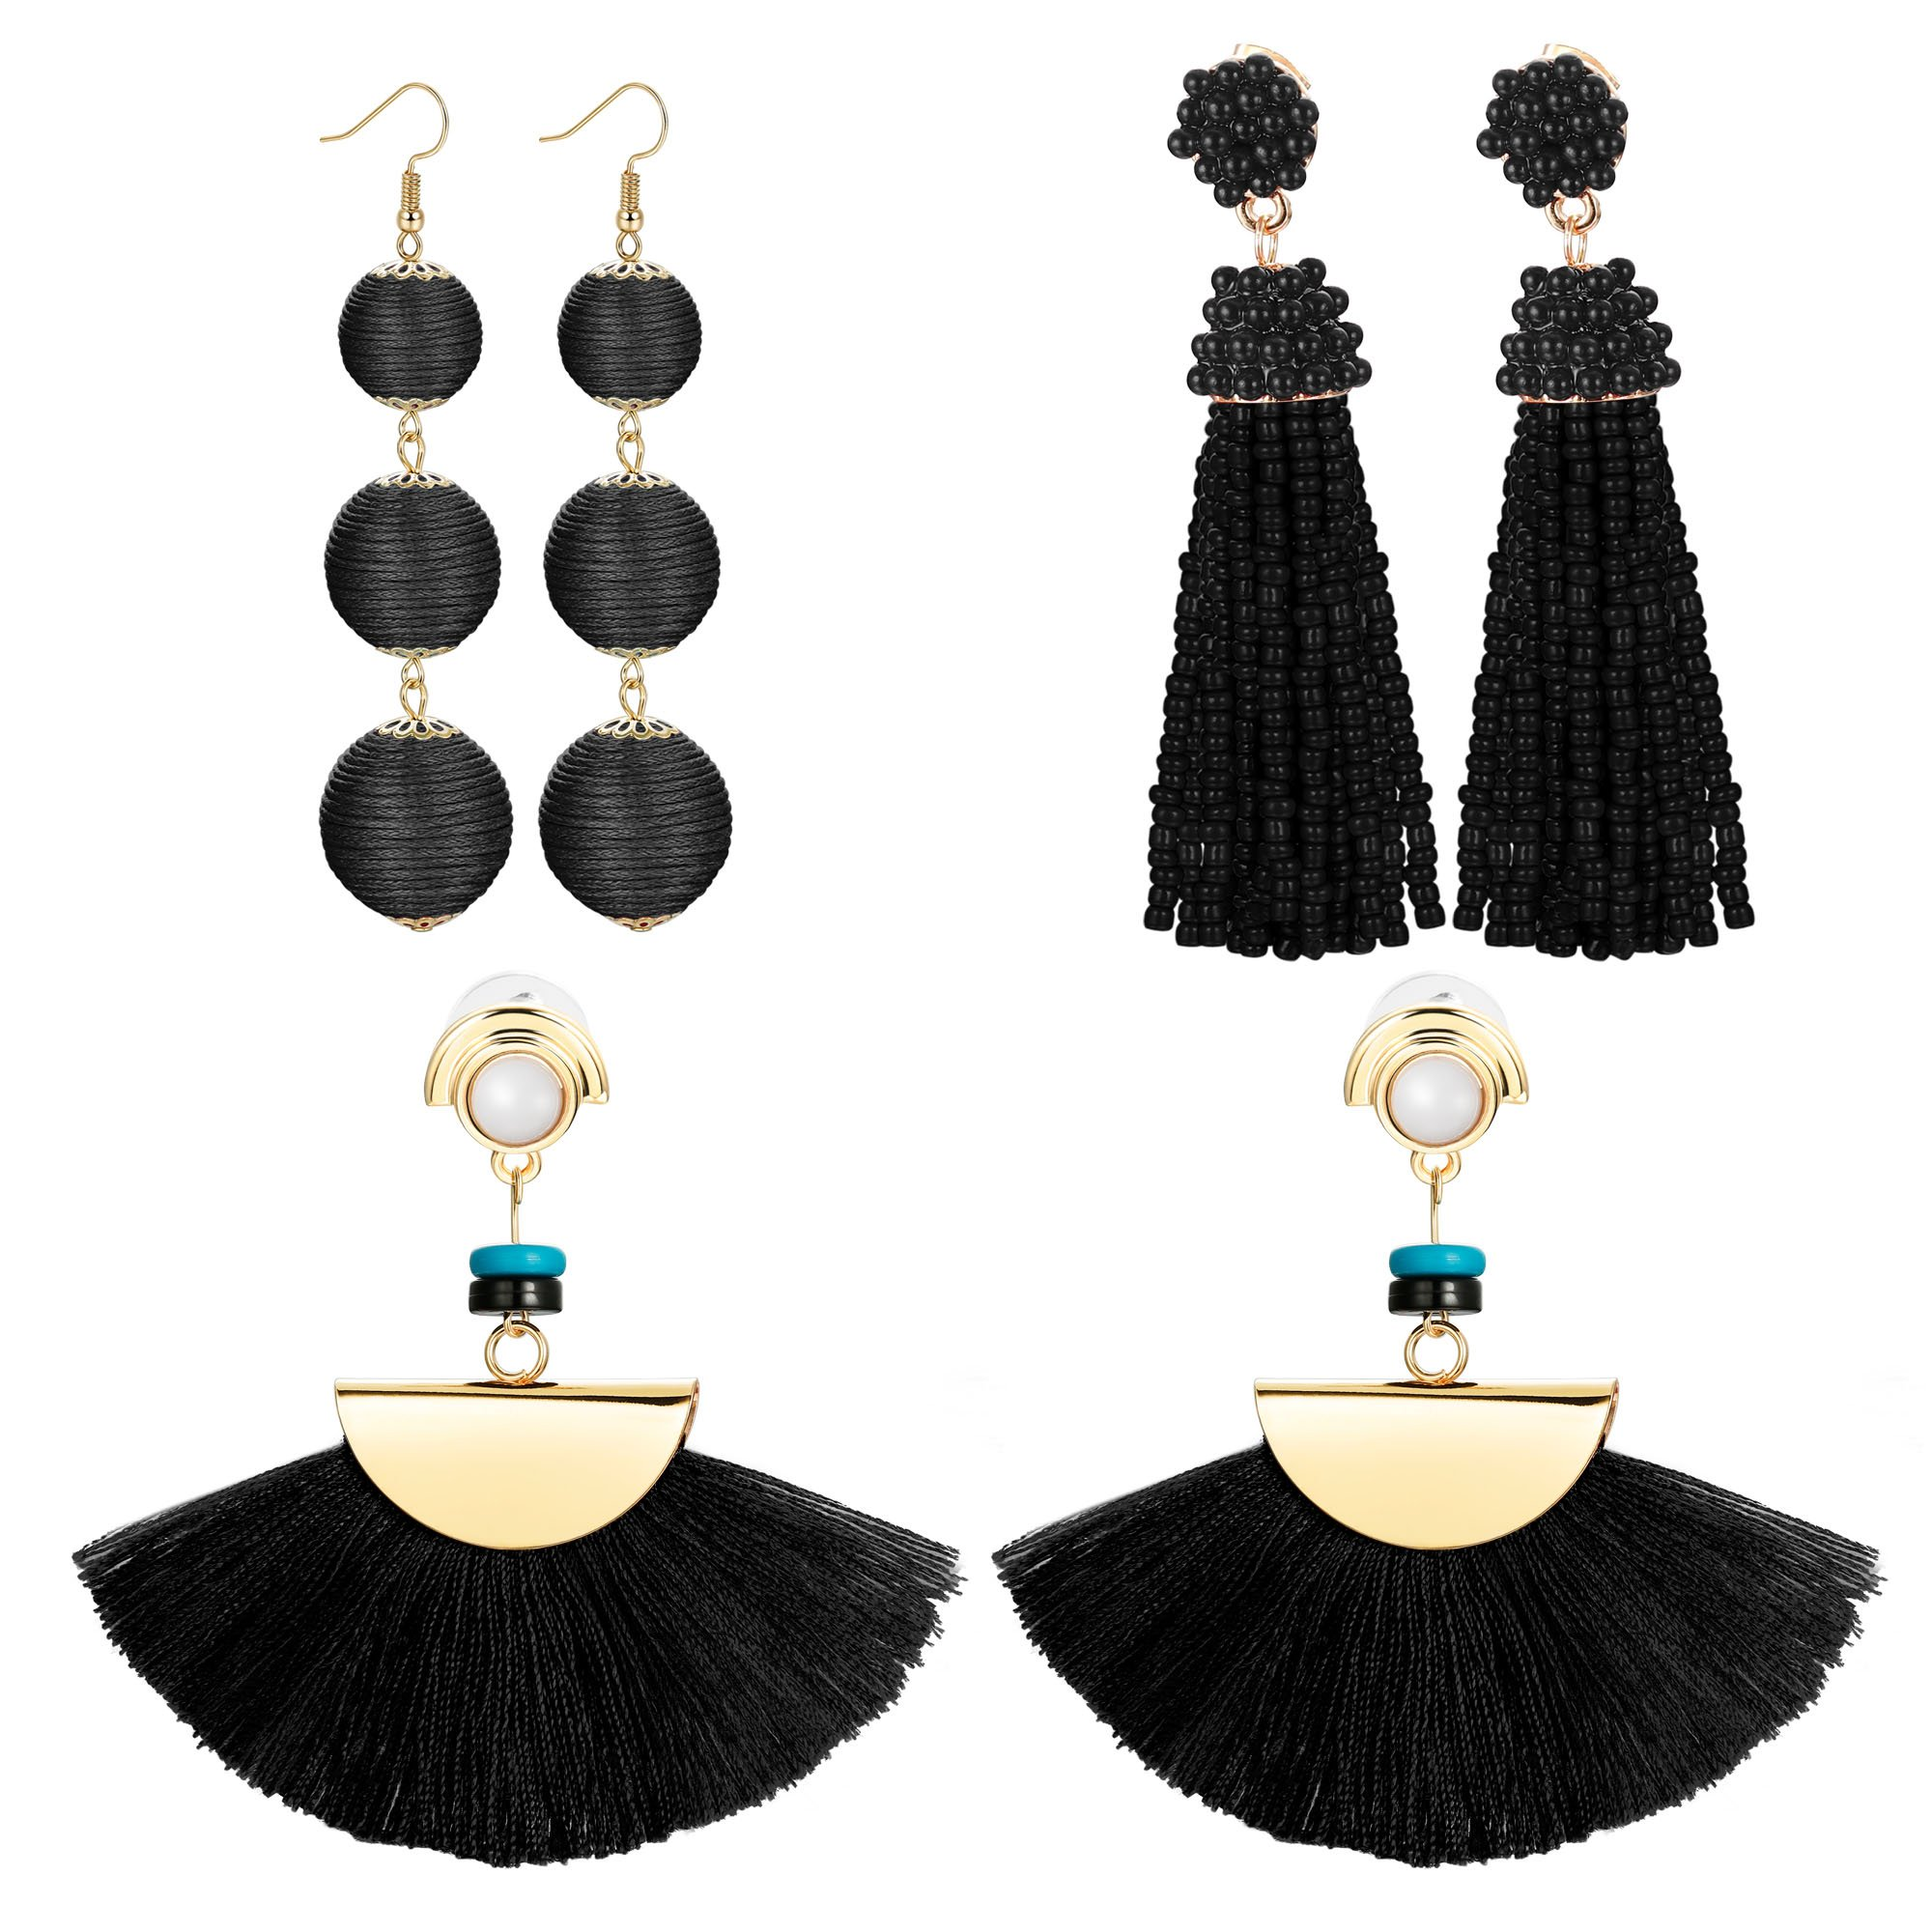 FIBO STEEL 3 Pairs Long Tassel Dangle Earrings for Women Girls Bead thread Drop Earrings